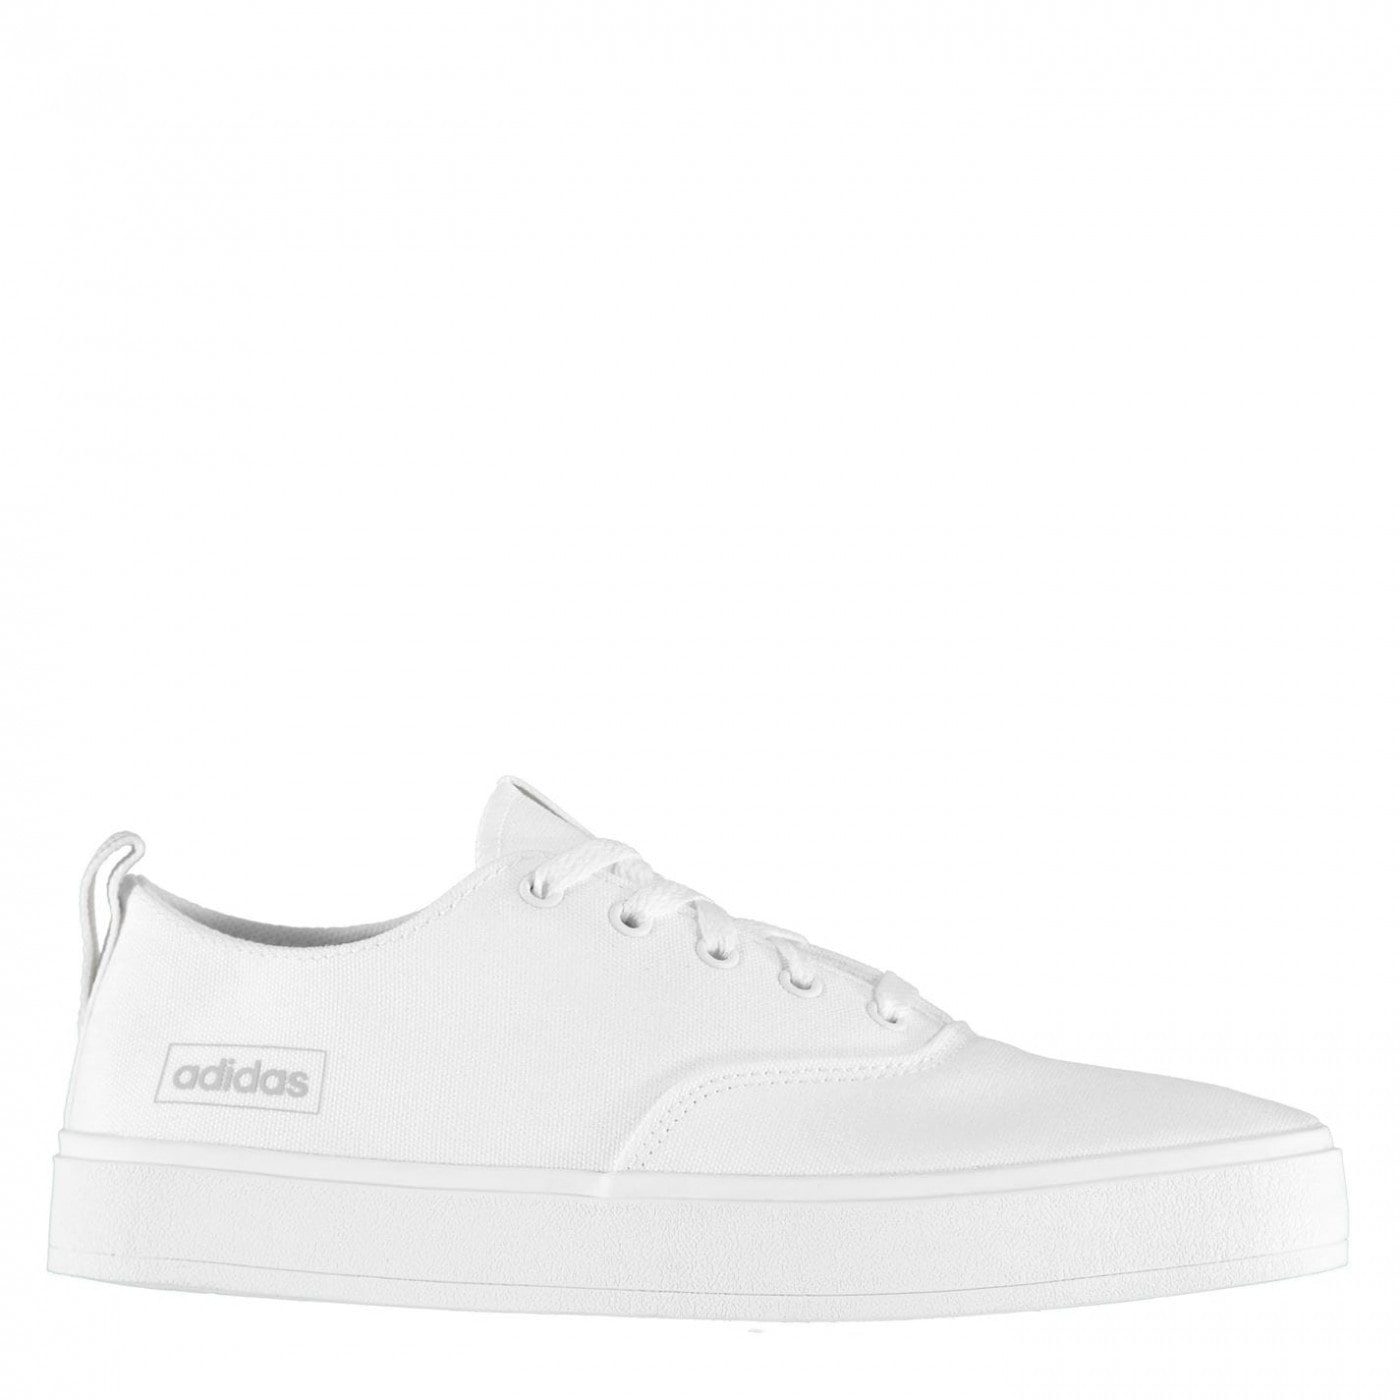 Adidas Broma Canvas Trainers Mens